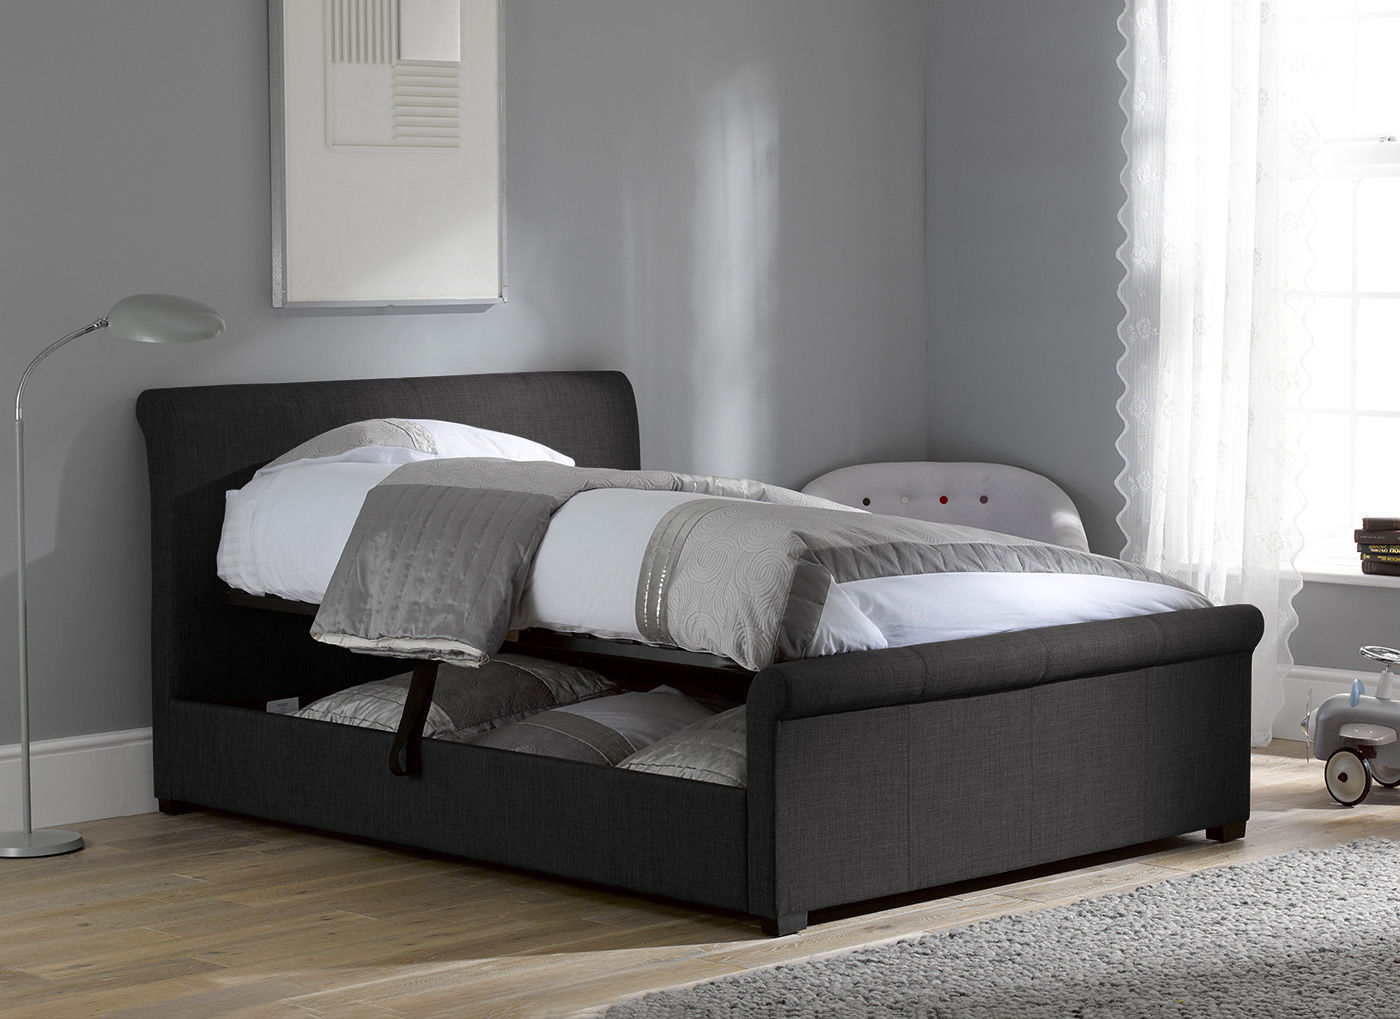 Fabric Upholstered Beds Discount Code Sava